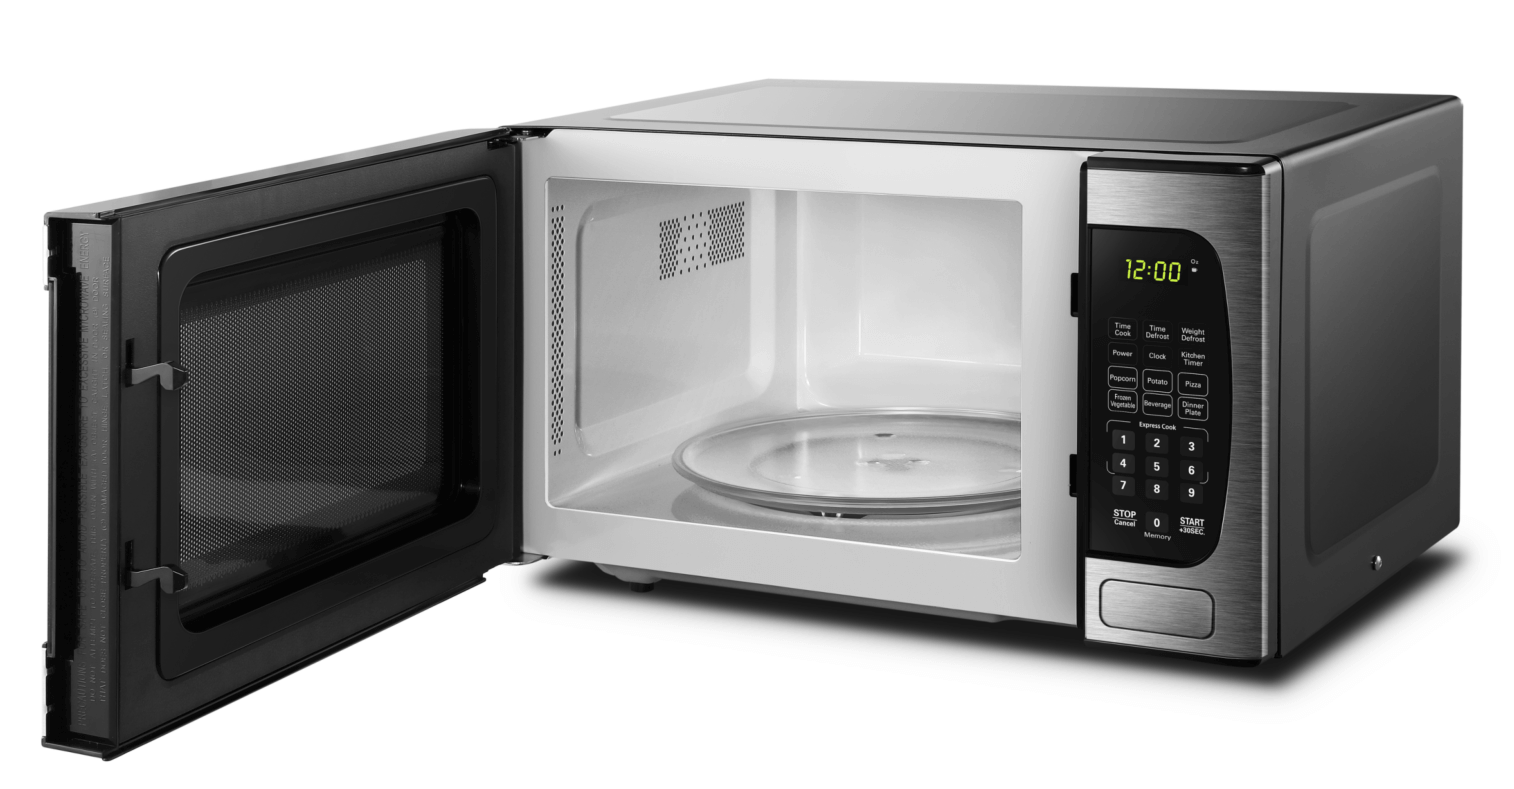 Danby 0.9 cu.ft Microwave with Stainless Steel front